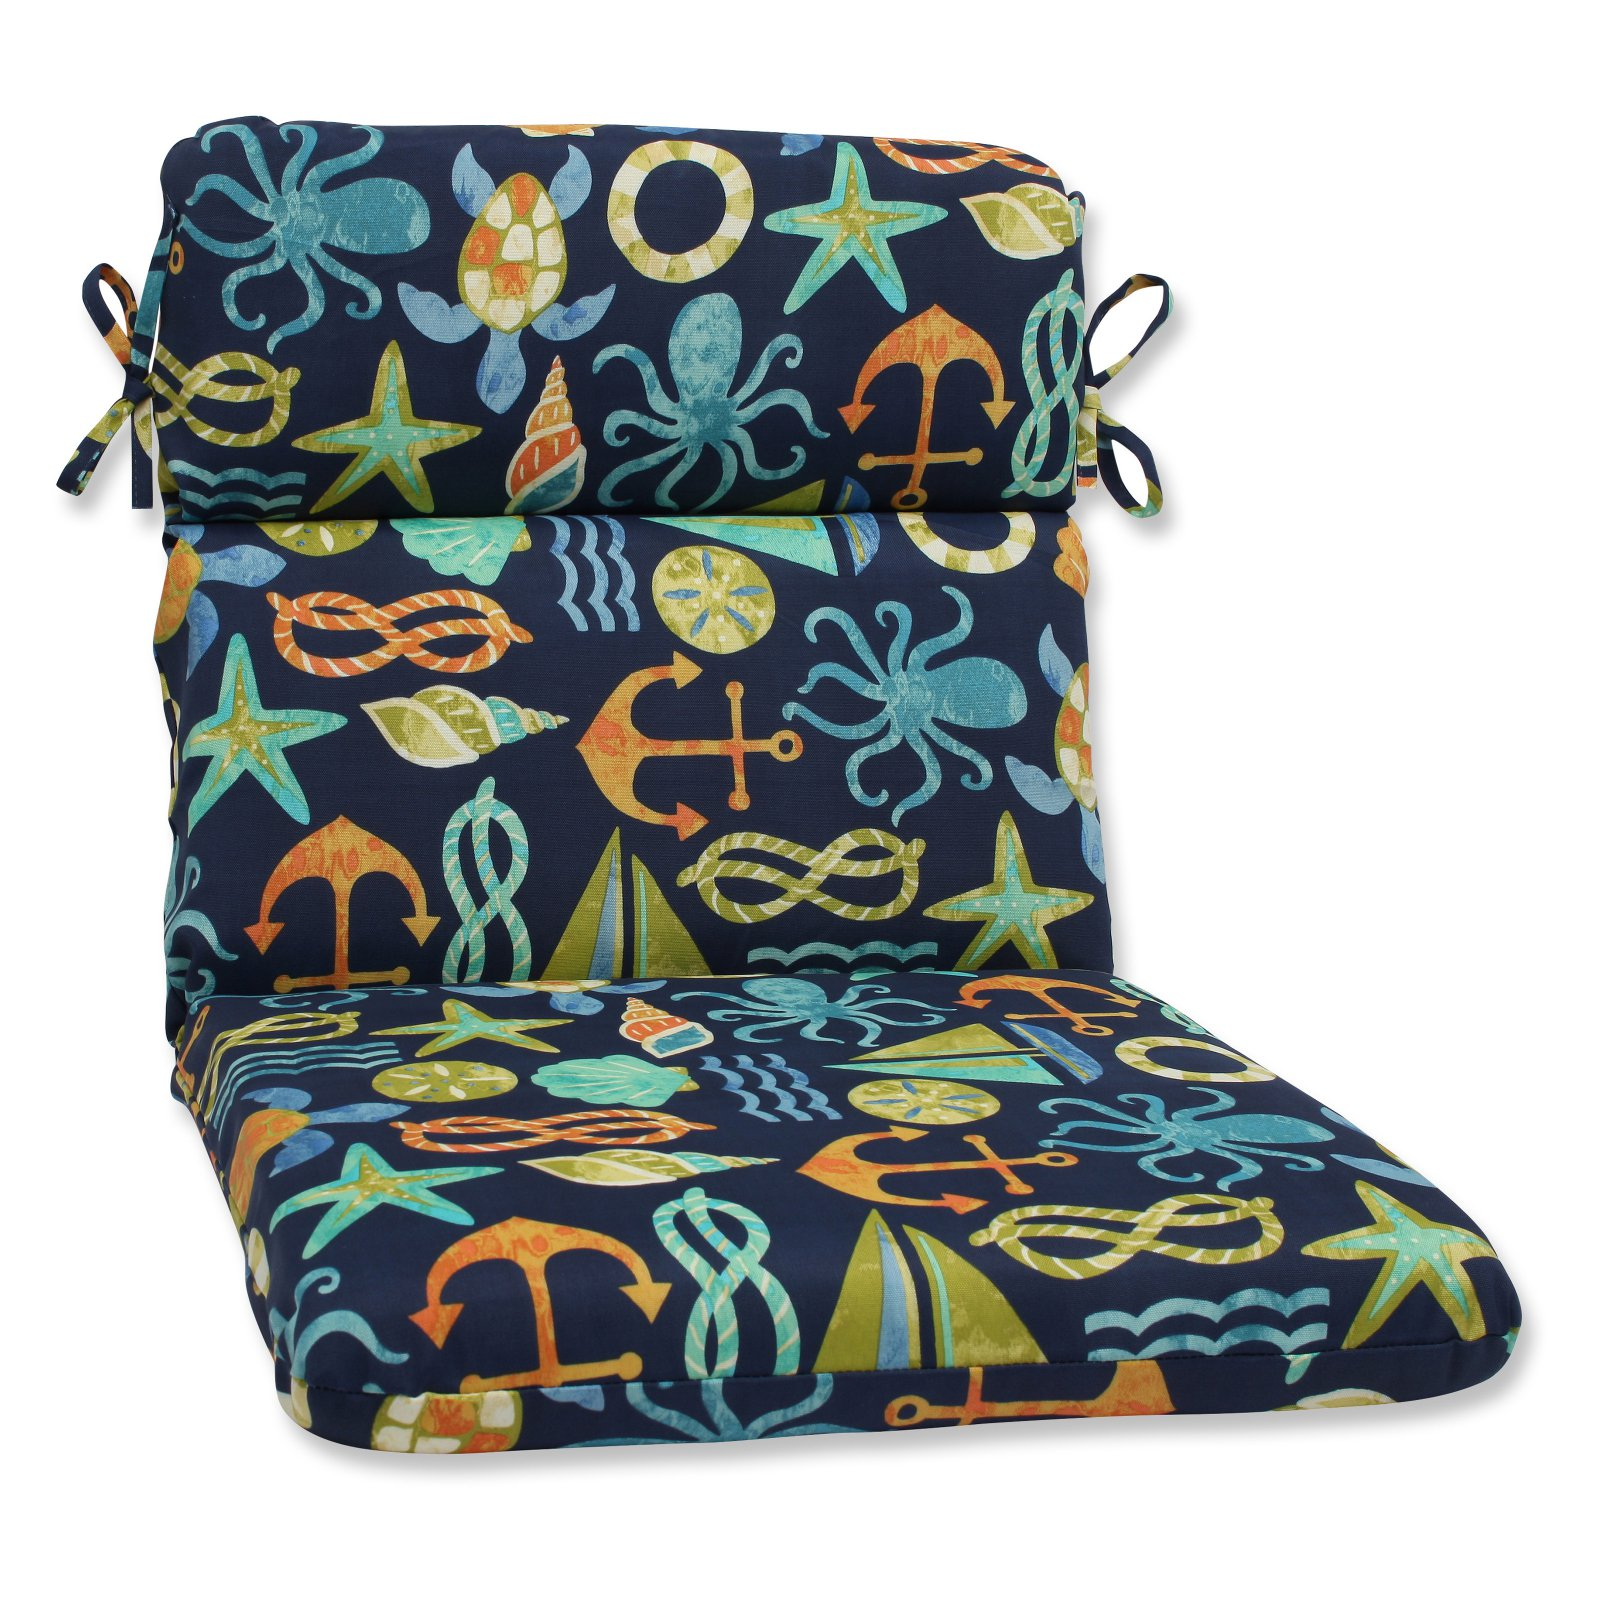 Pillow Perfect Outdoor/ Indoor Seapoint Neptune Rounded Corners Chair Cushion